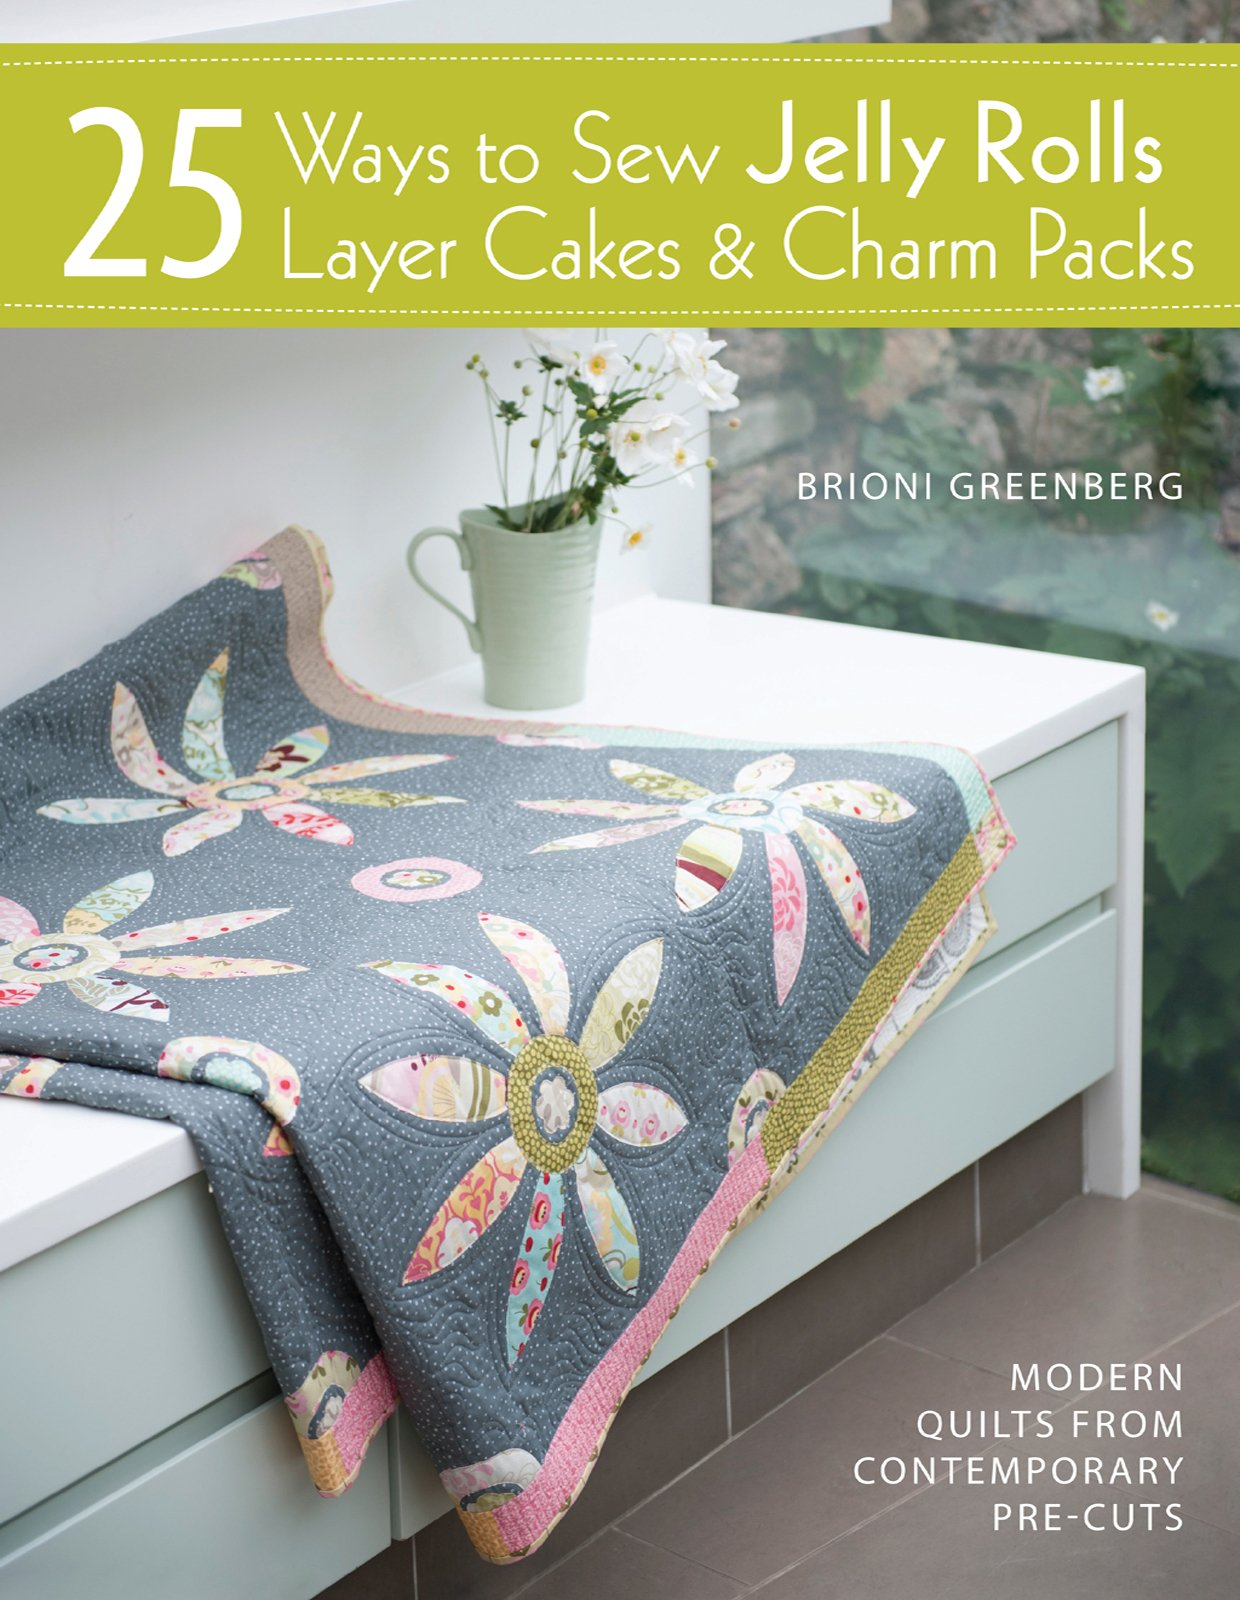 25 Ways to Sew Jelly Rolls, Layer Cakes & Charm Packs: Modern Quilt Projects from Contemporary Pre-Cuts